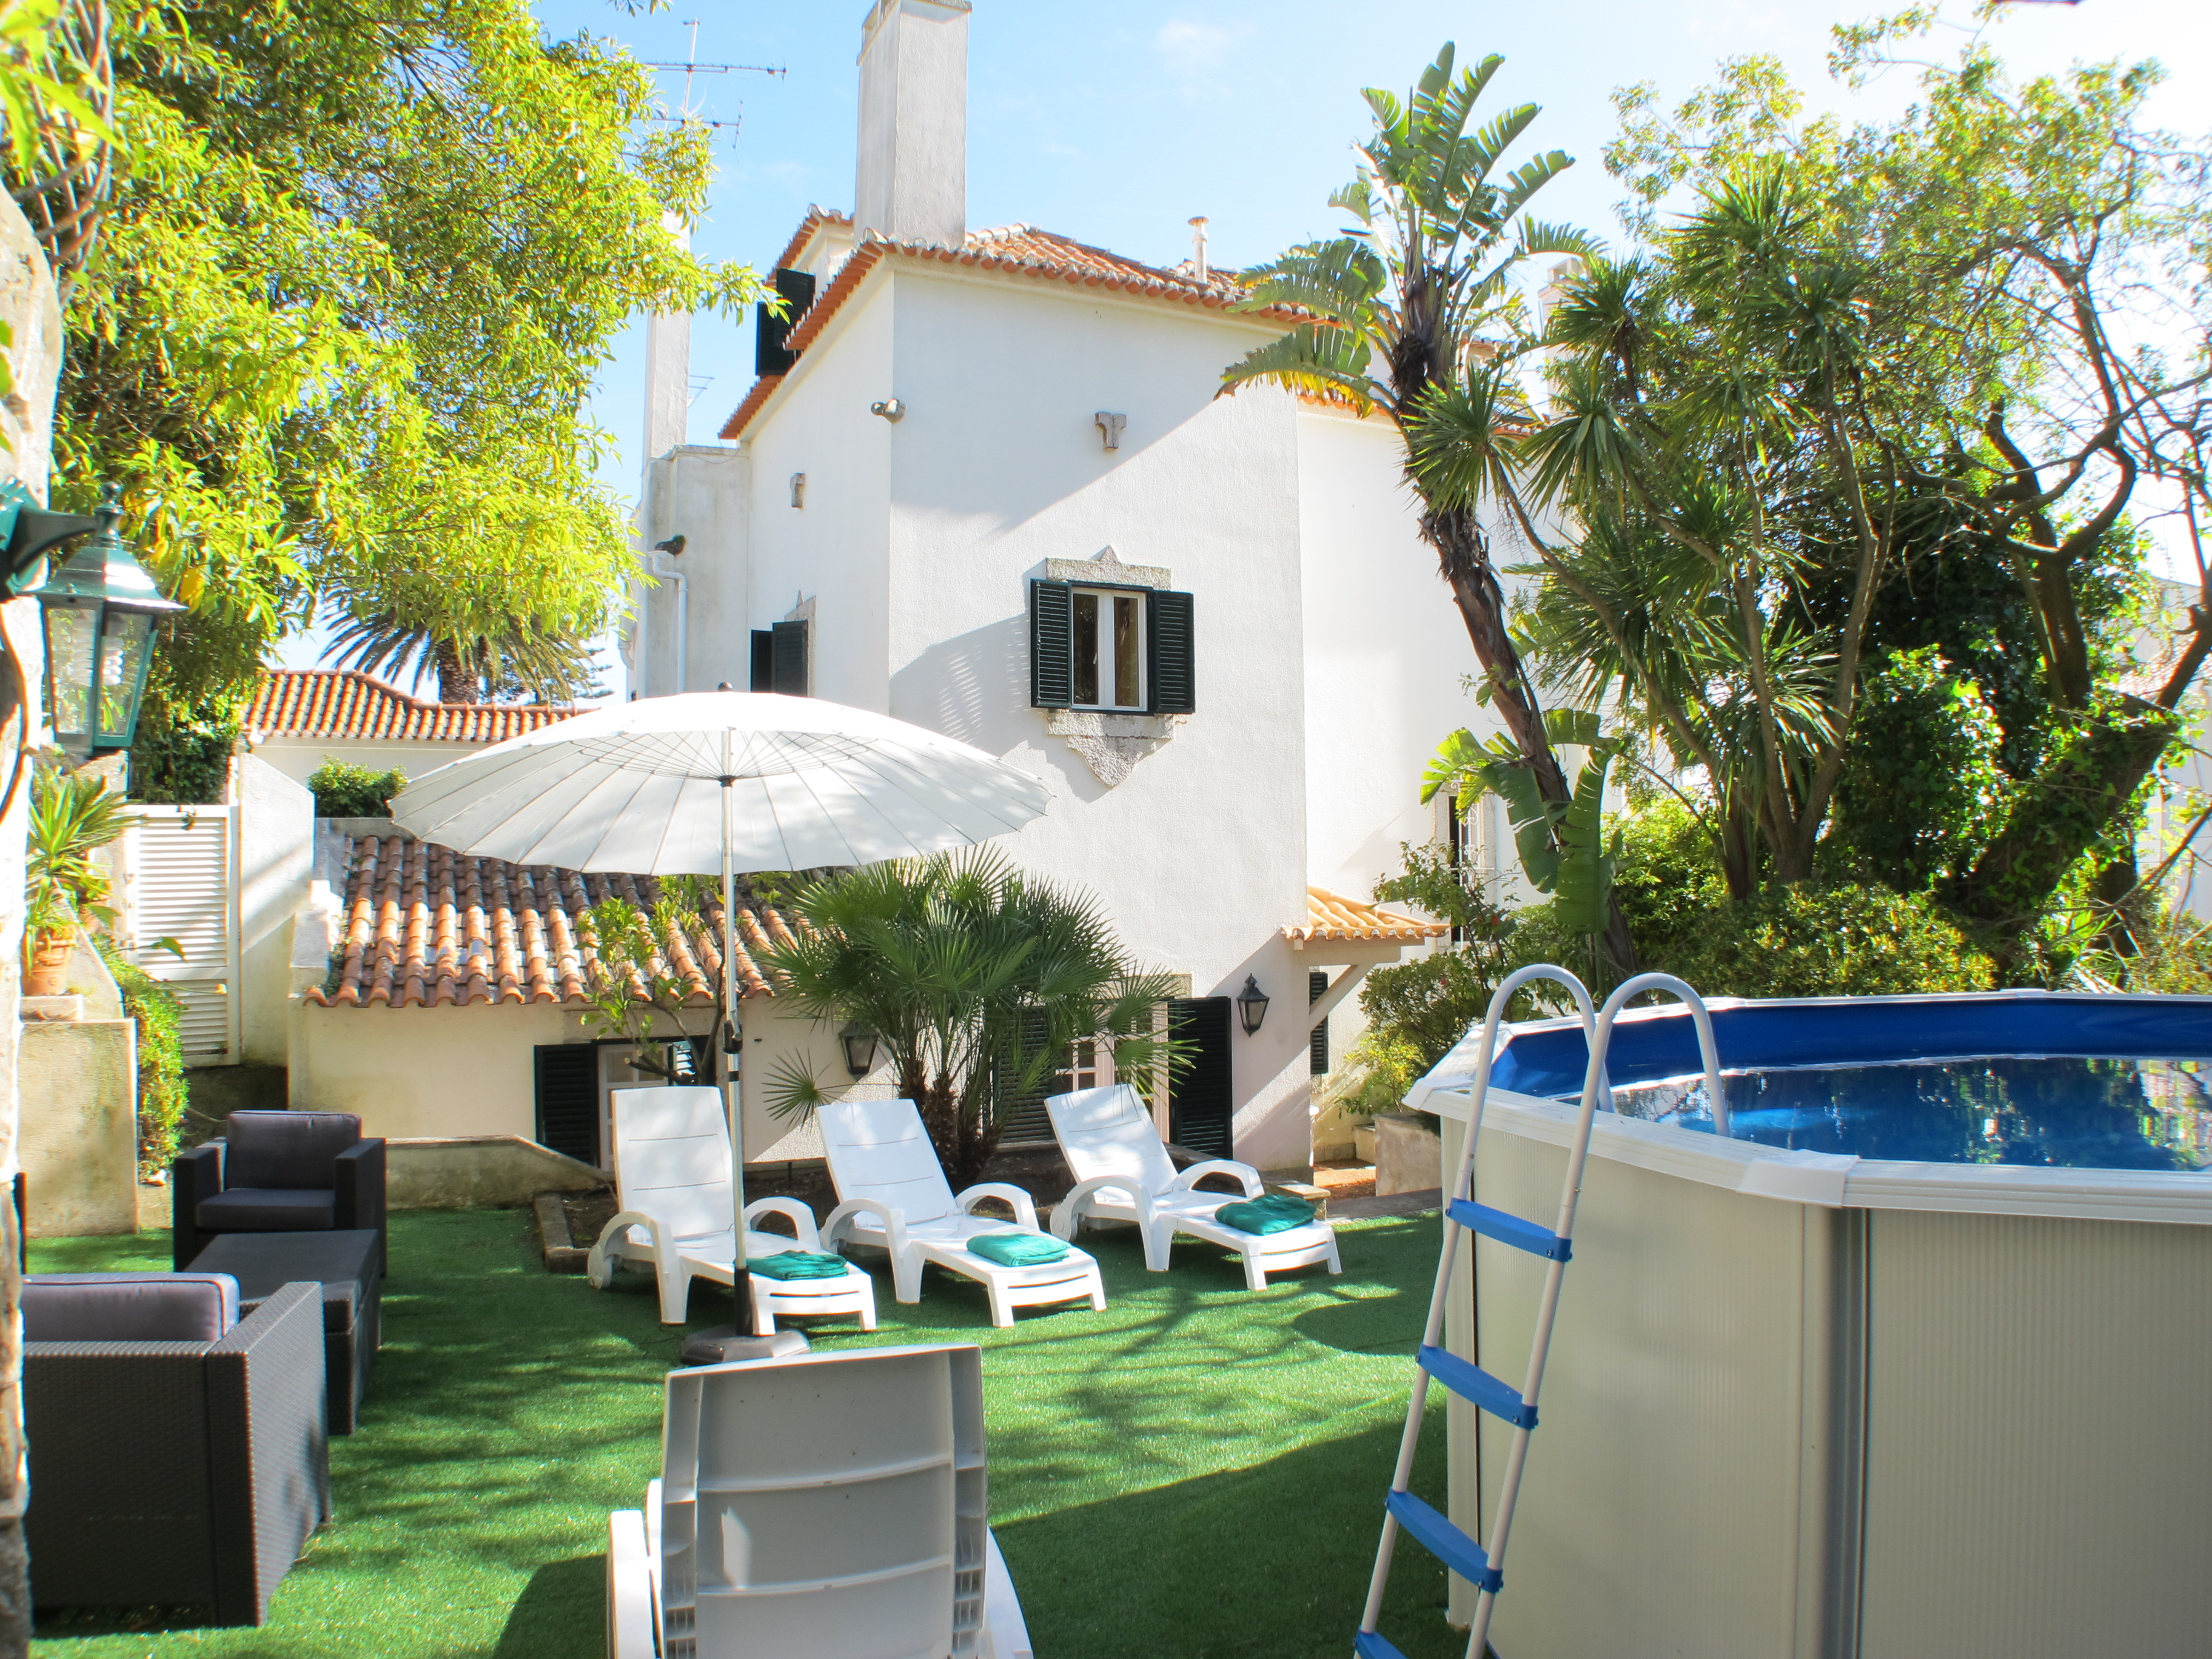 Villa Azamor – Spacious classical villa with garden and small pool in the centre of Estoril